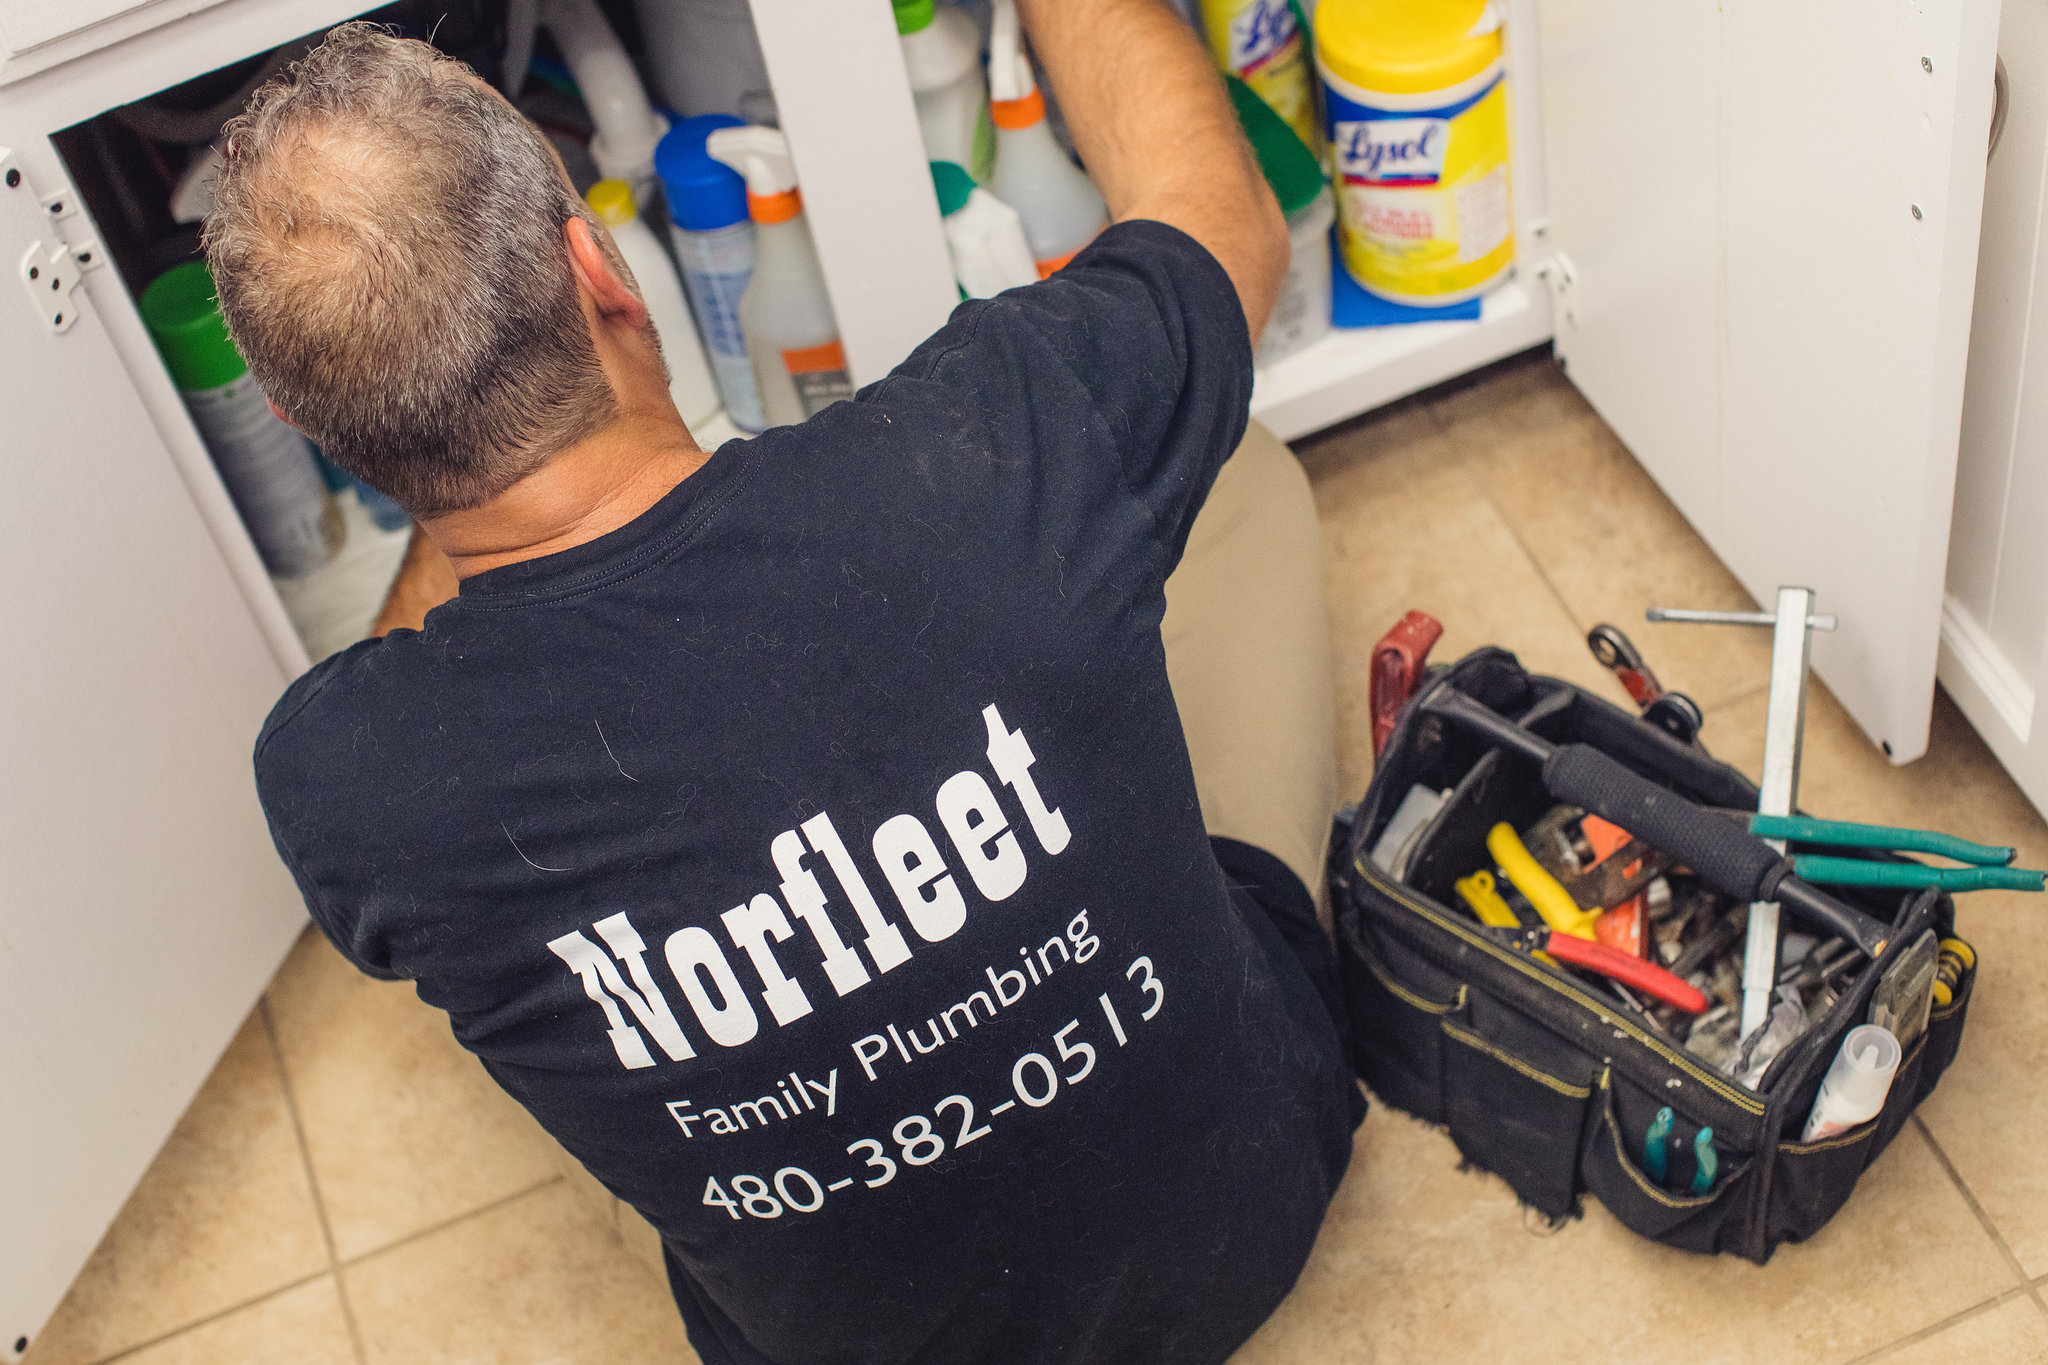 aaron-kes-photography-green-thumb-local-norfleet-family-plumbing-39.jpg